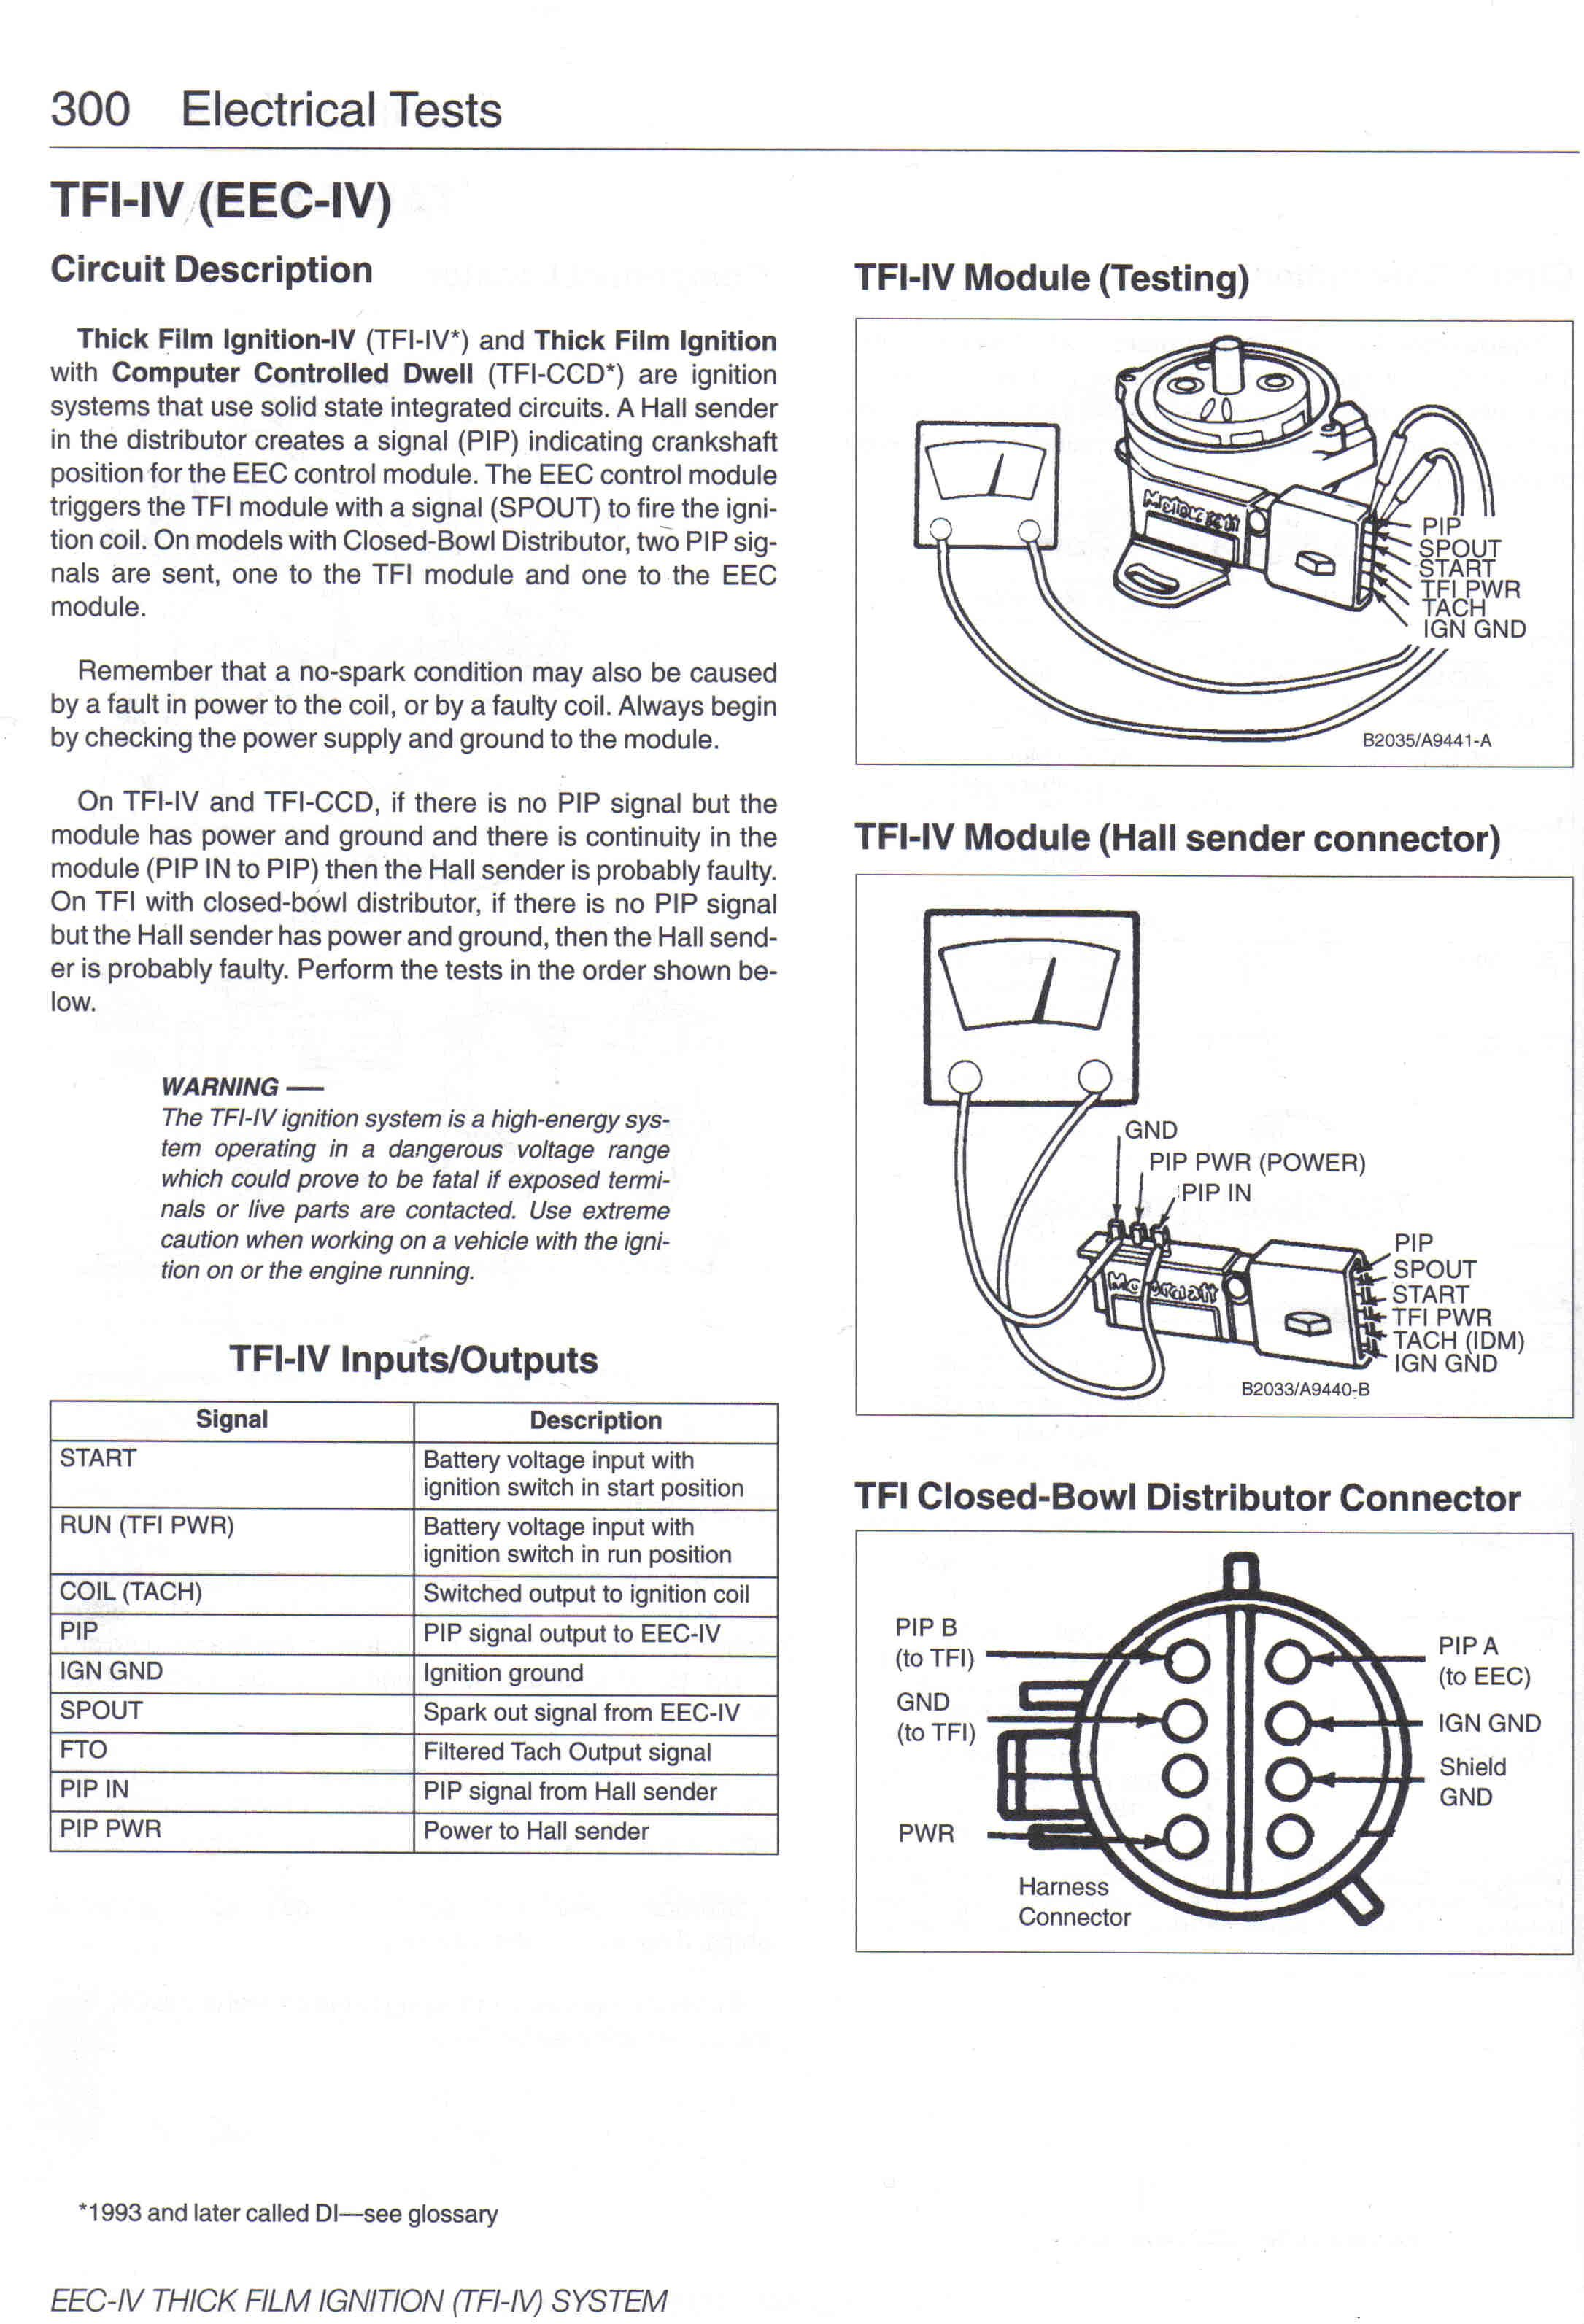 58541d1231520525 1990 mustang gt coil issues msd blaster 8227 tfi 1 diagrams 1213973 1990 mustang wiring diagram mustang faq wiring 1993 mustang wiring diagram at bayanpartner.co